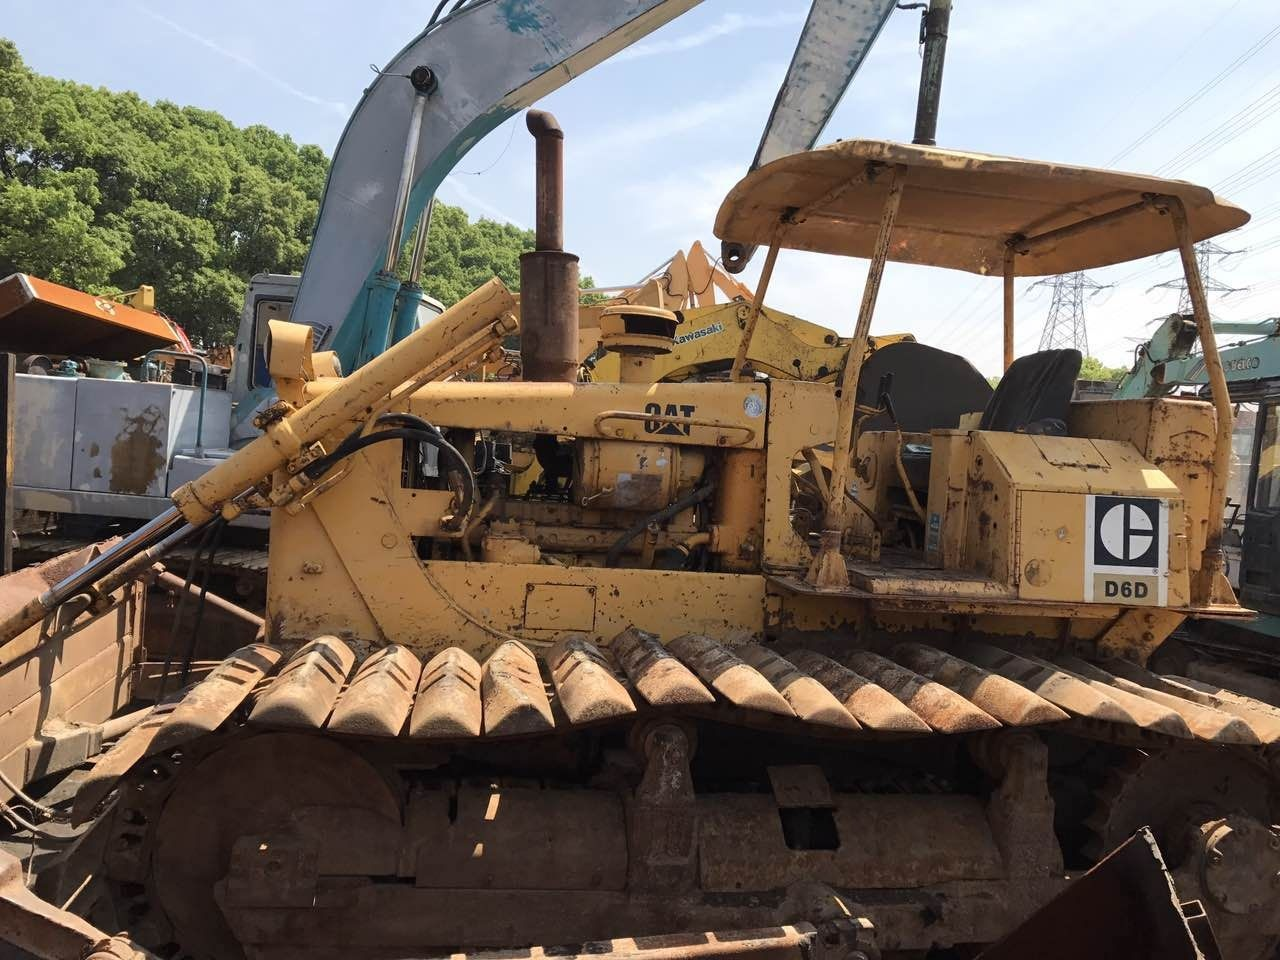 Caterpillar D6D LGP D6CLGP D5B D5C D5H-LGP Crawler Tractor